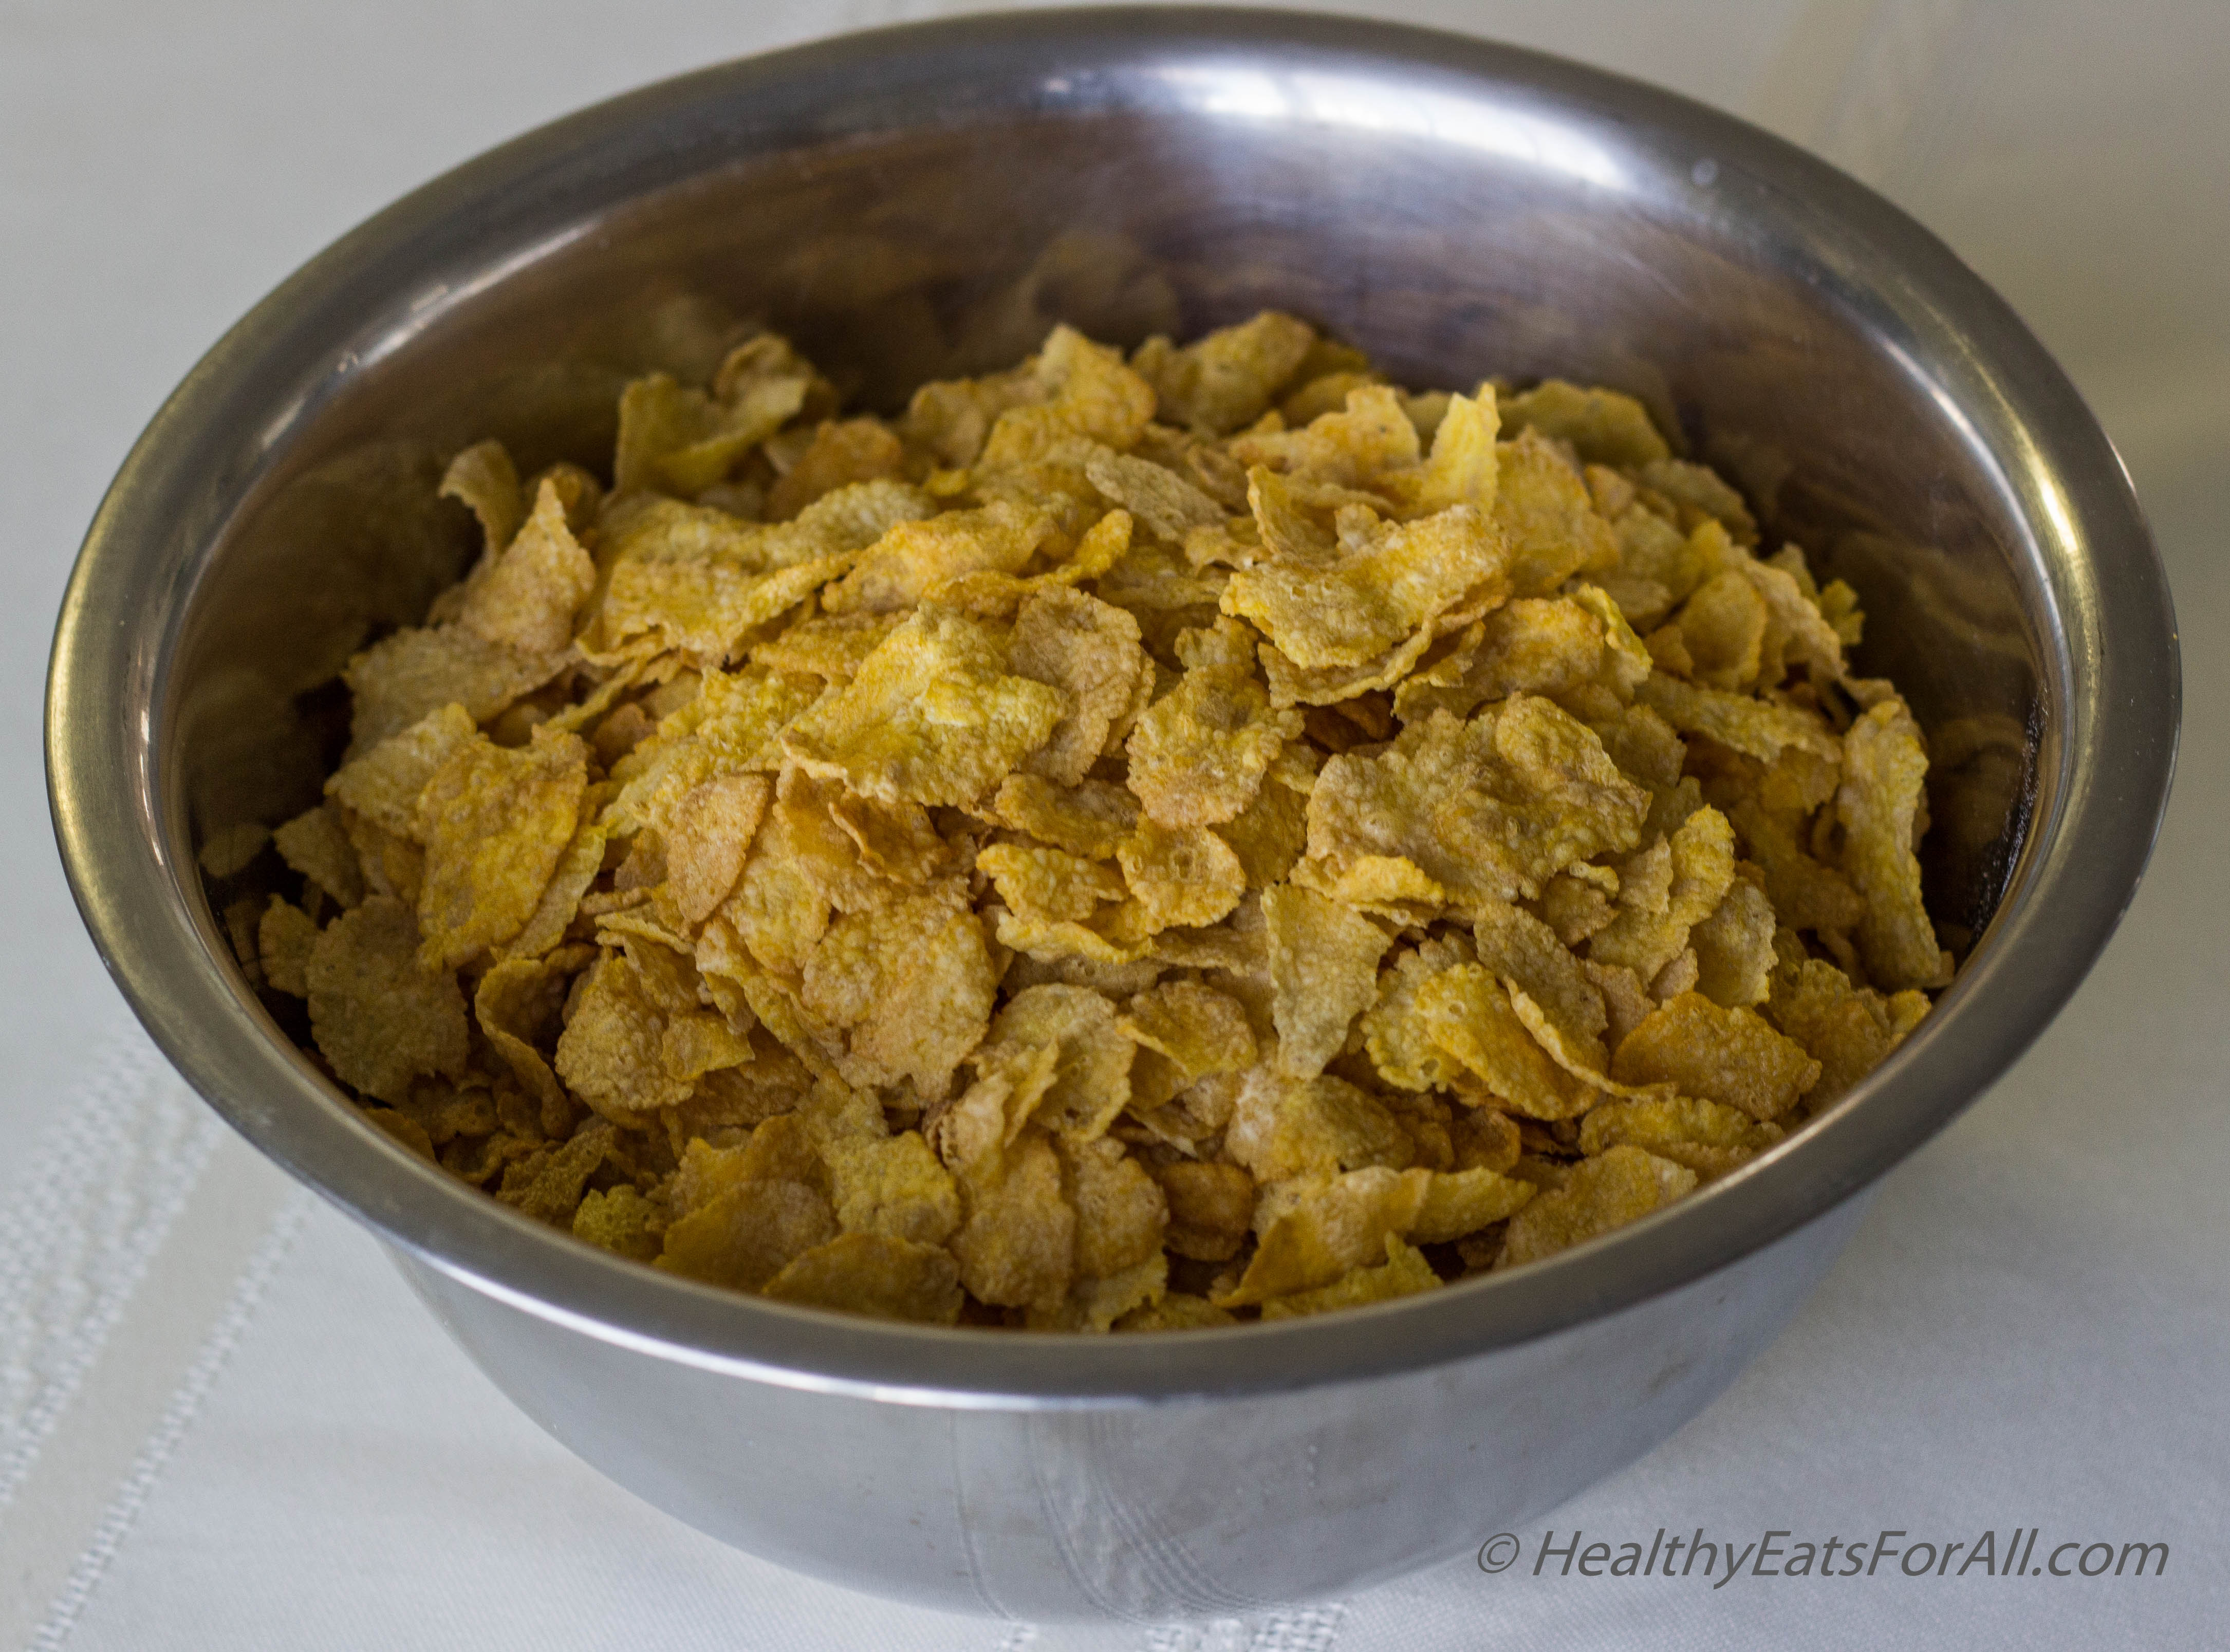 Homemade honey bunches of oats cereal healthy eats for all homemade honey bunches of oats cereal 7 ccuart Choice Image